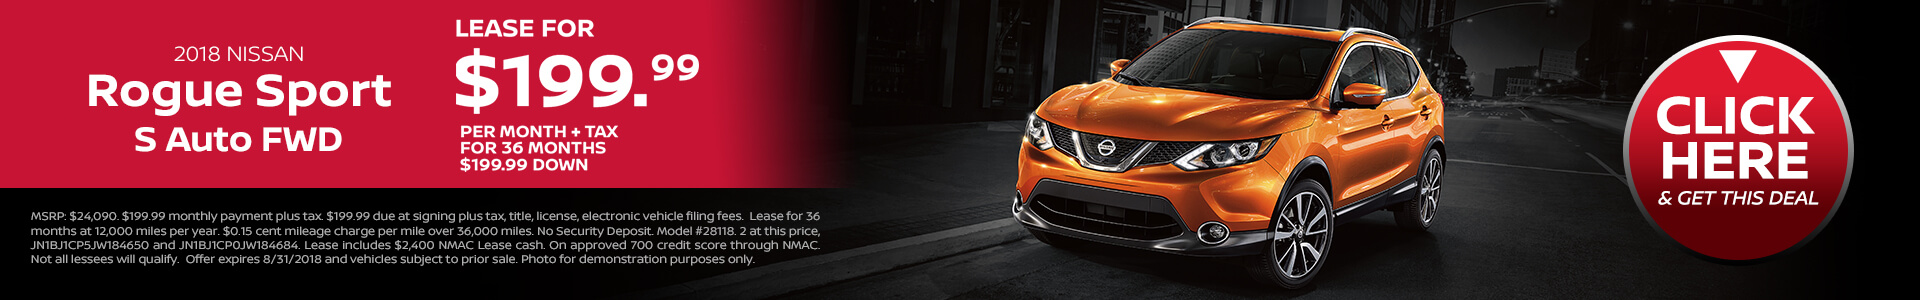 Rogue Sport Lease